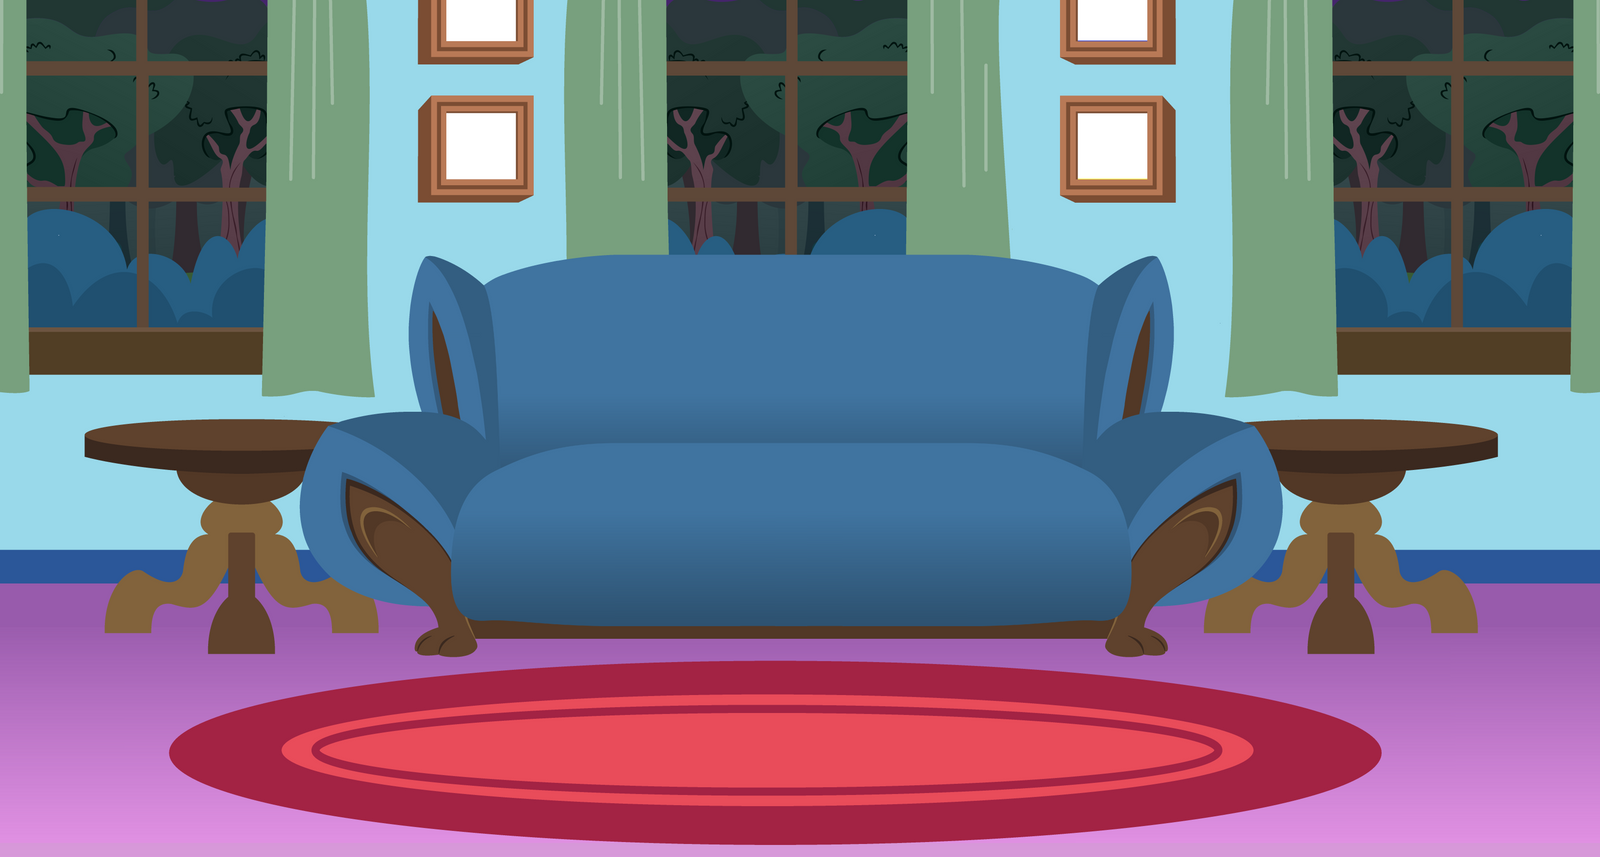 Frenzys Parants Living Room Background By Evilfrenzy On